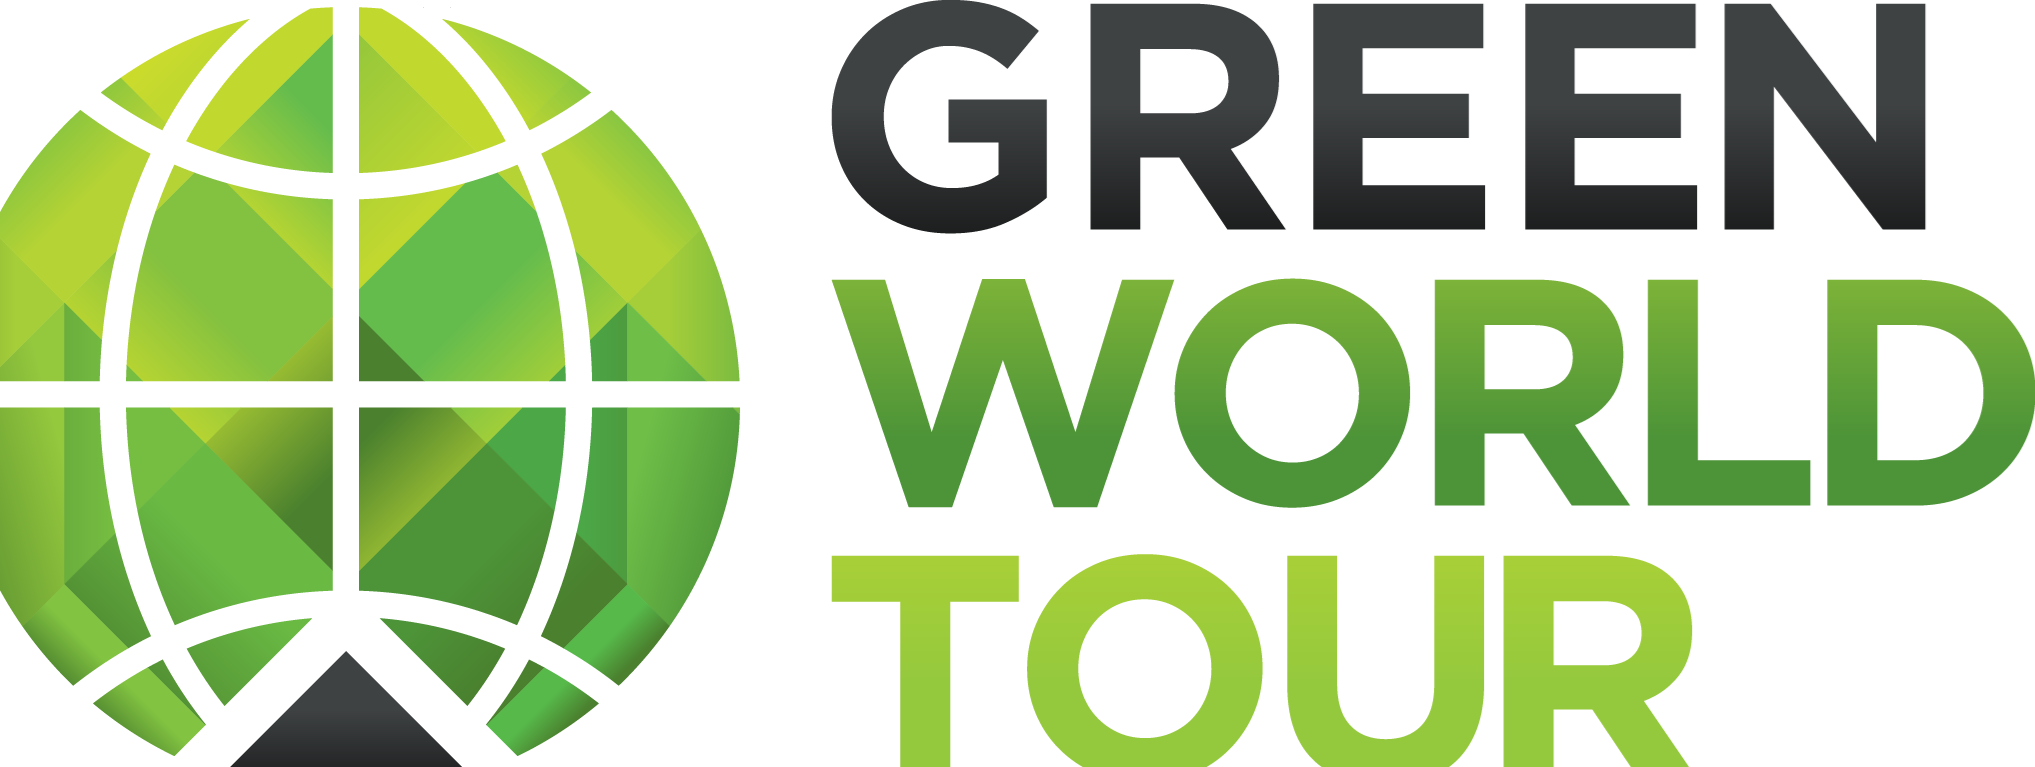 Wide GWT Logo.png